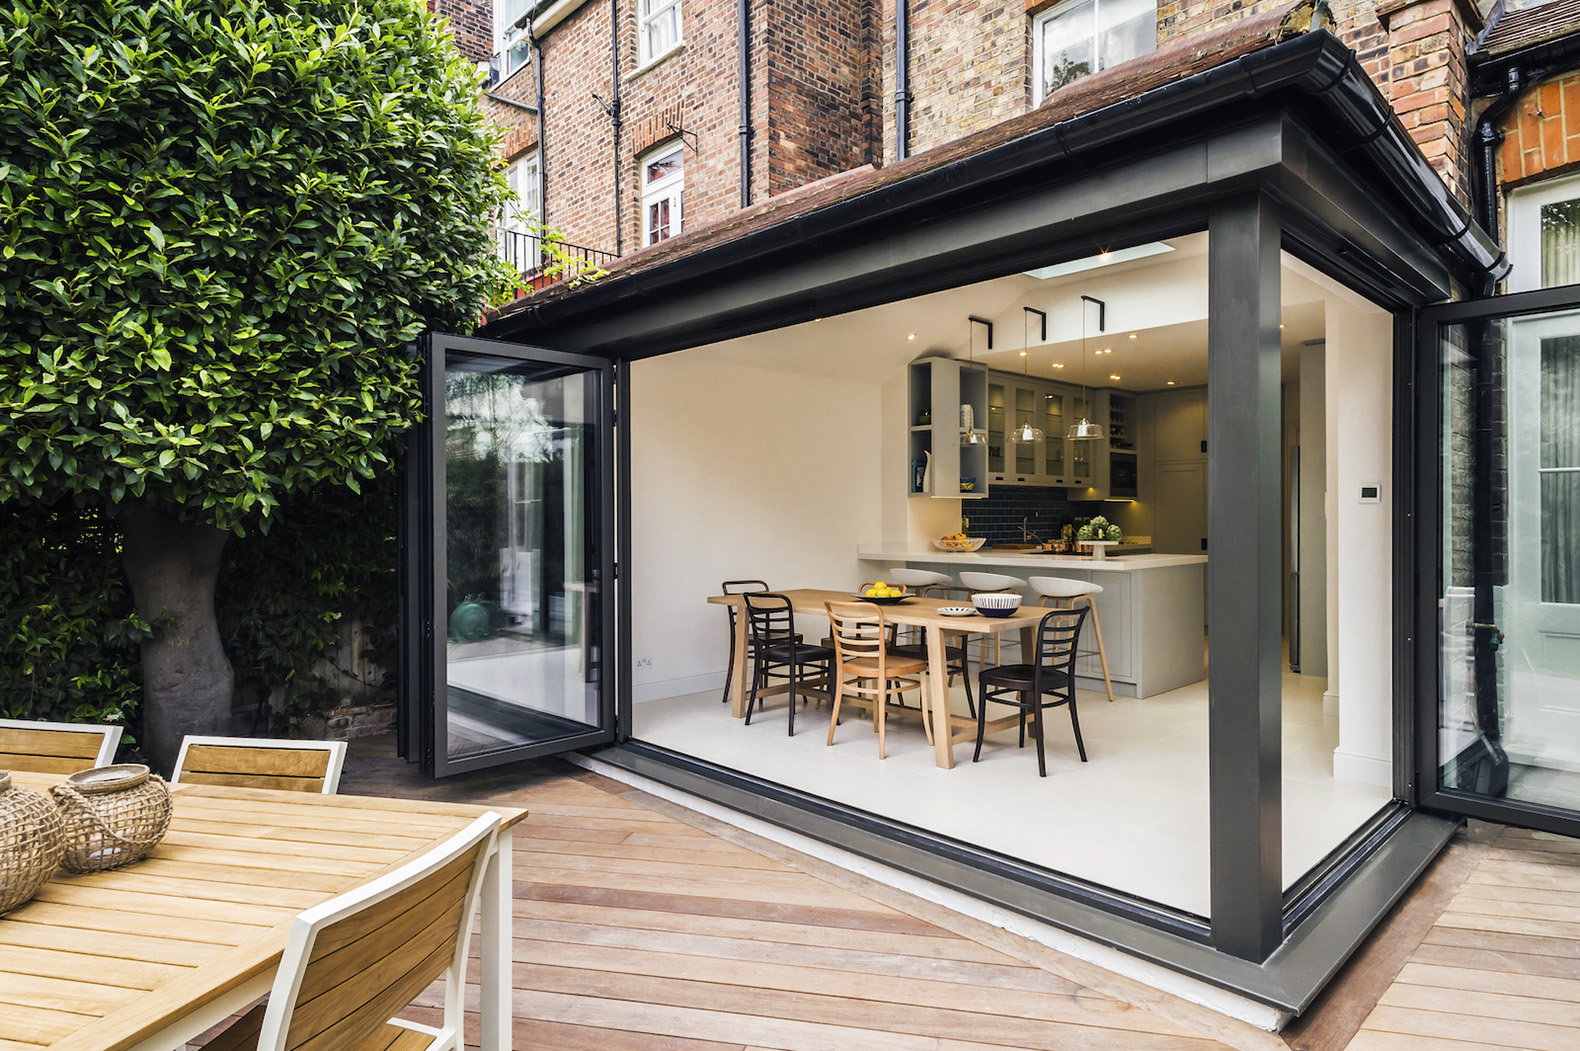 enchanting modern townhouse interior design | London architects infuse dated Victorian townhouse with ...